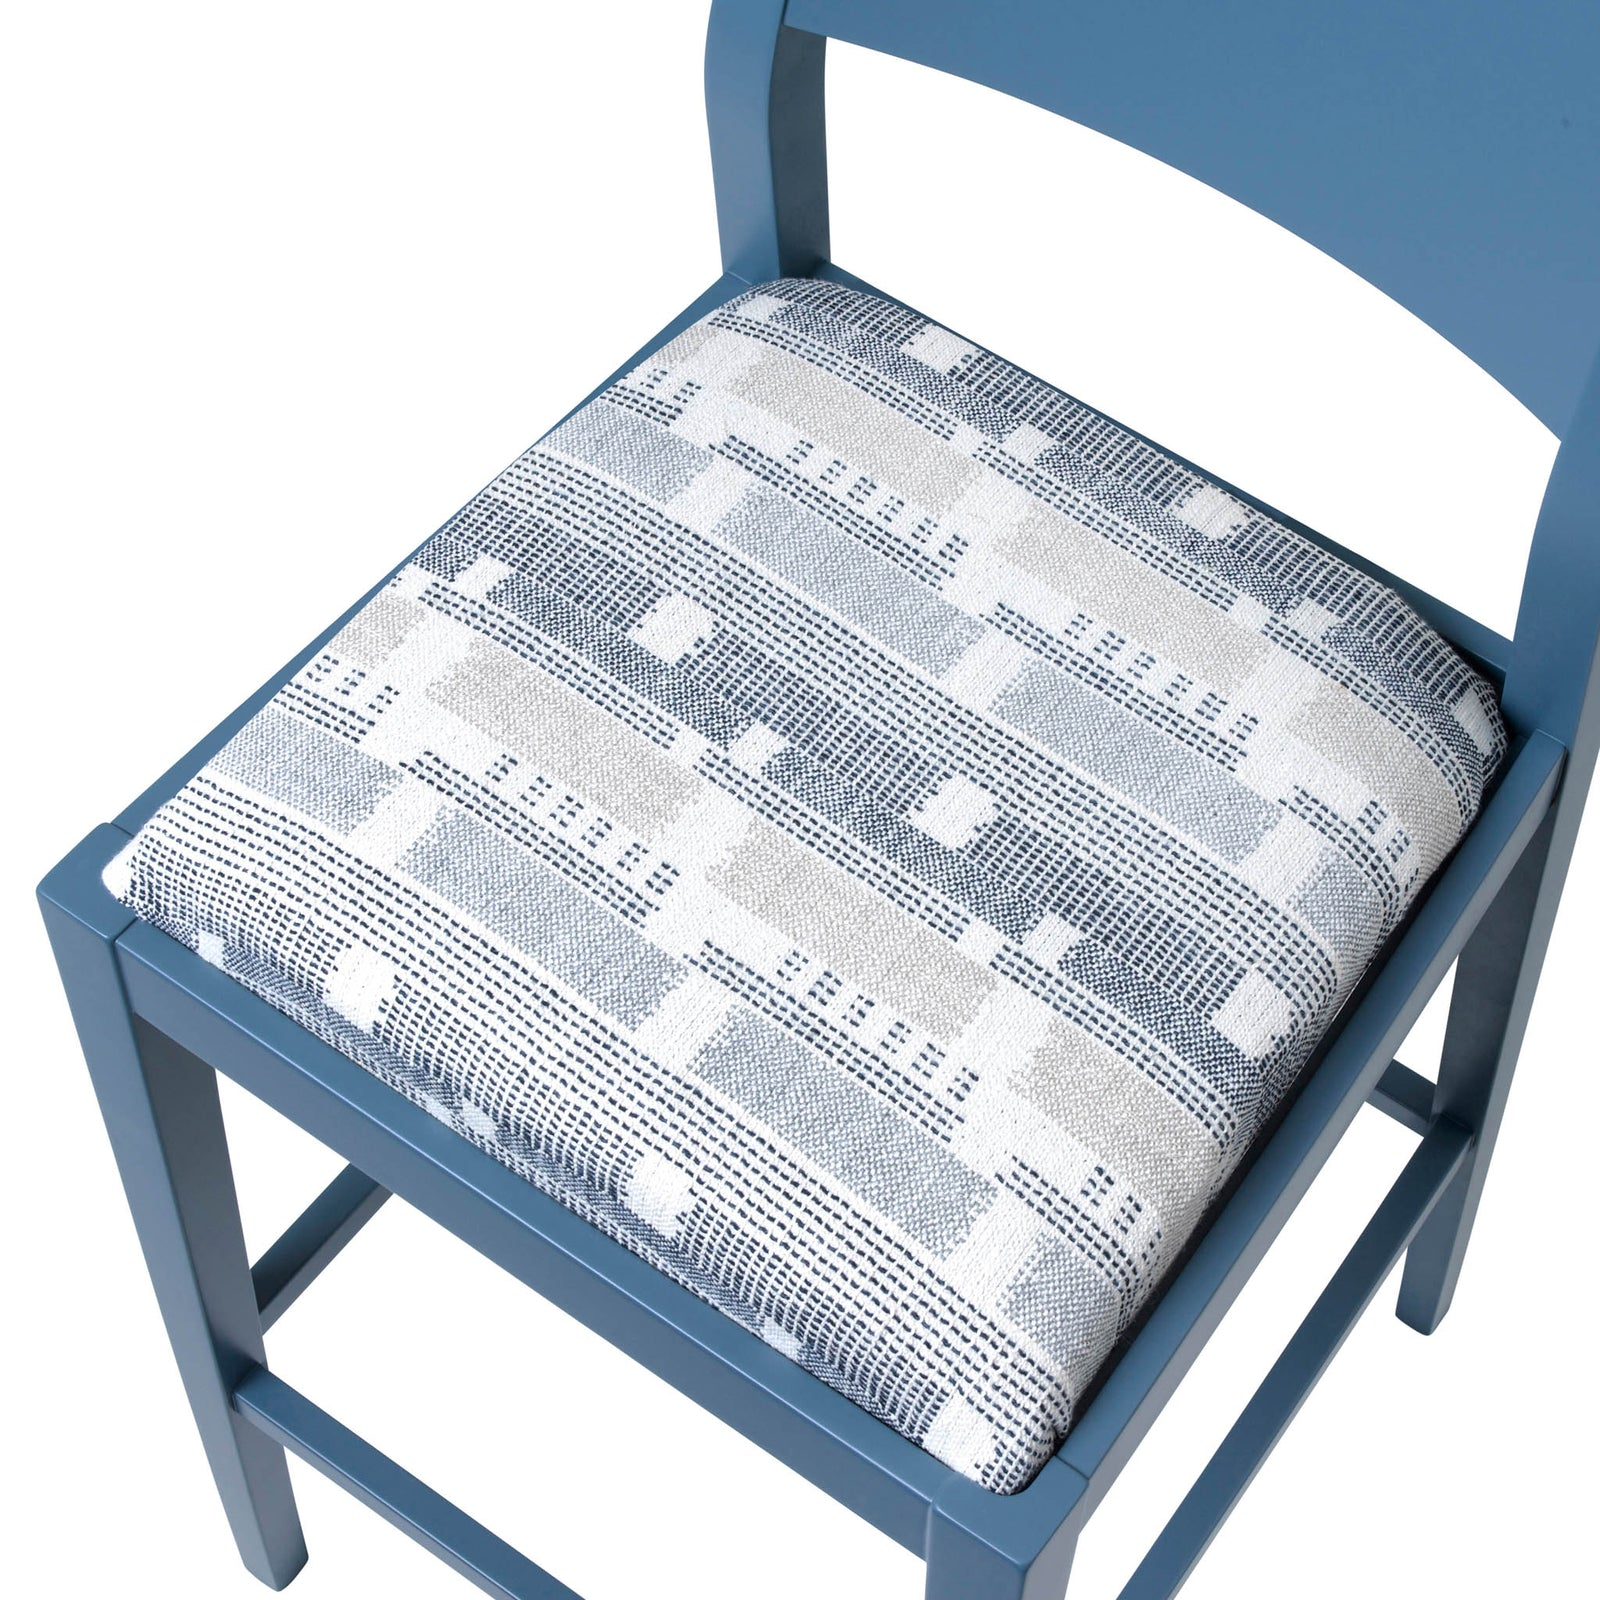 James Luxury Bar Stool Upholstered in the luxury Loom Weave Blue from Kit Kemp